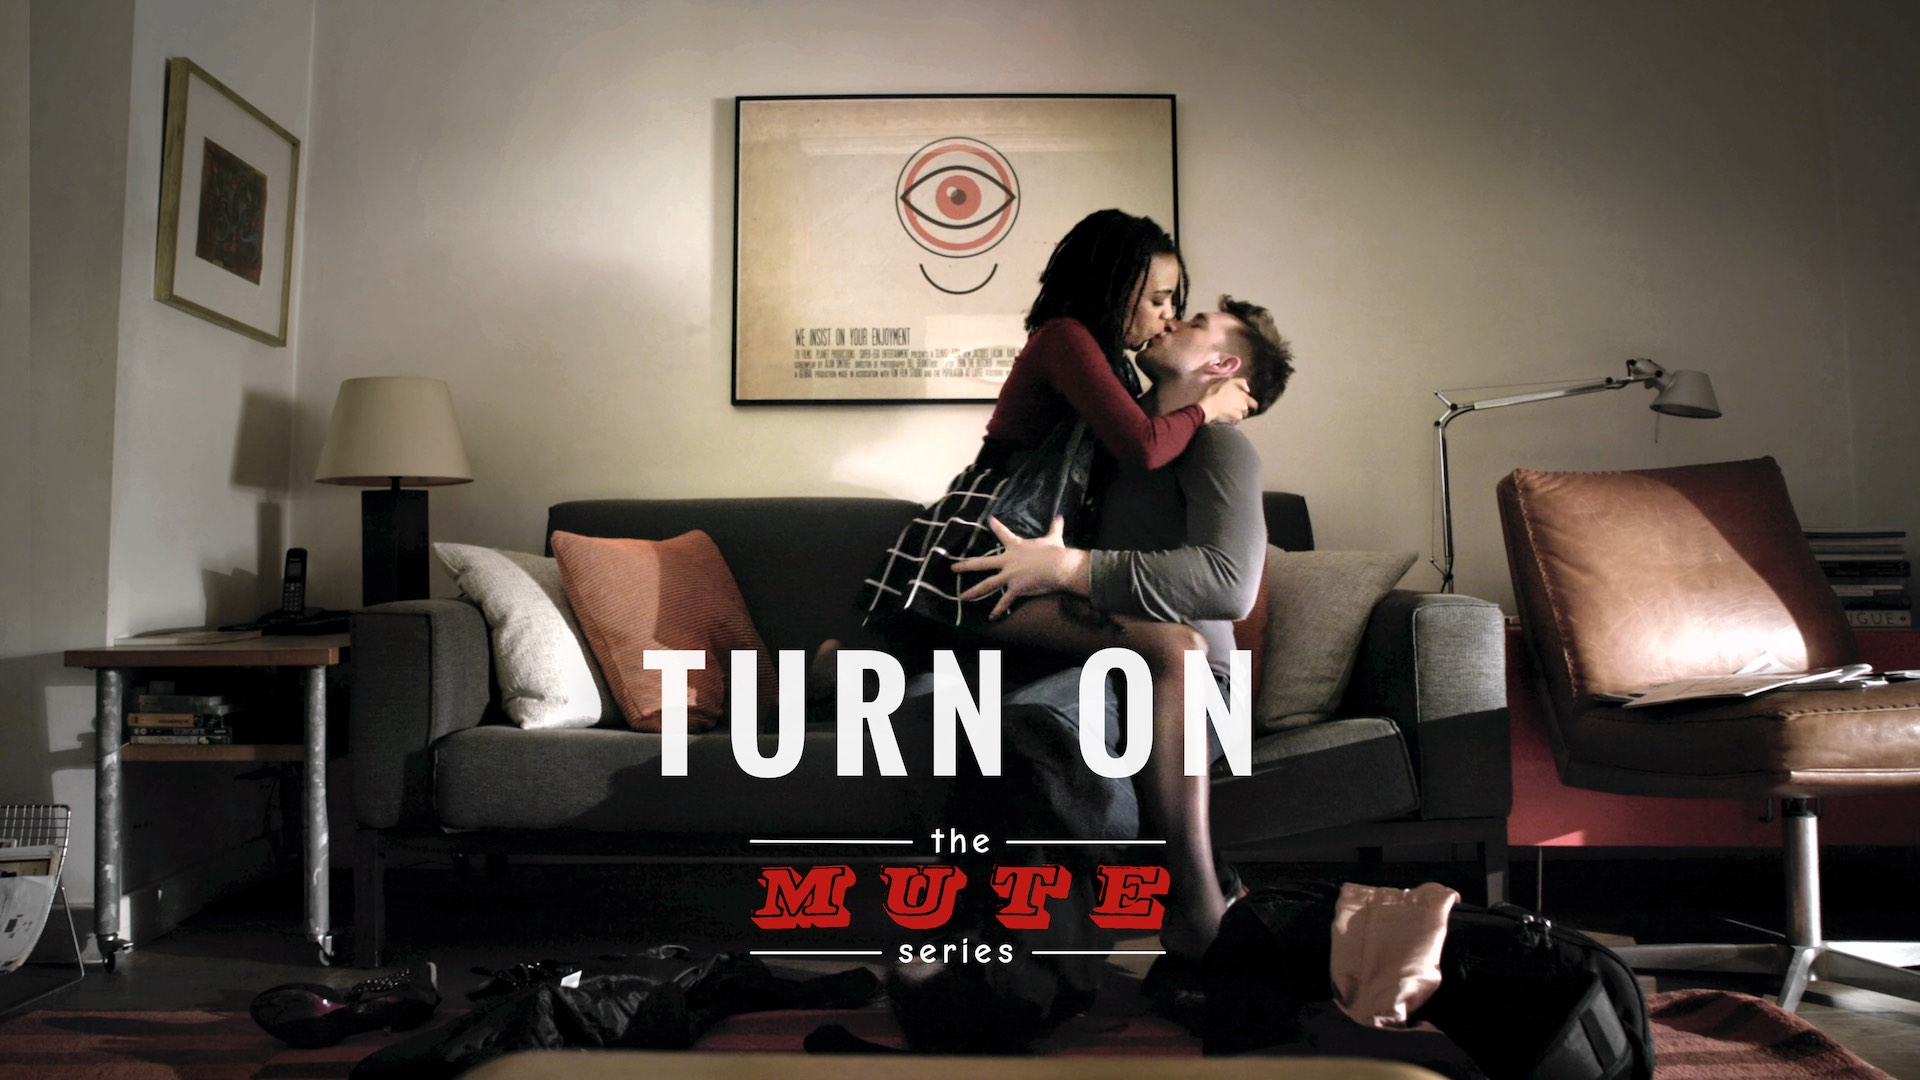 turn on from the mute series